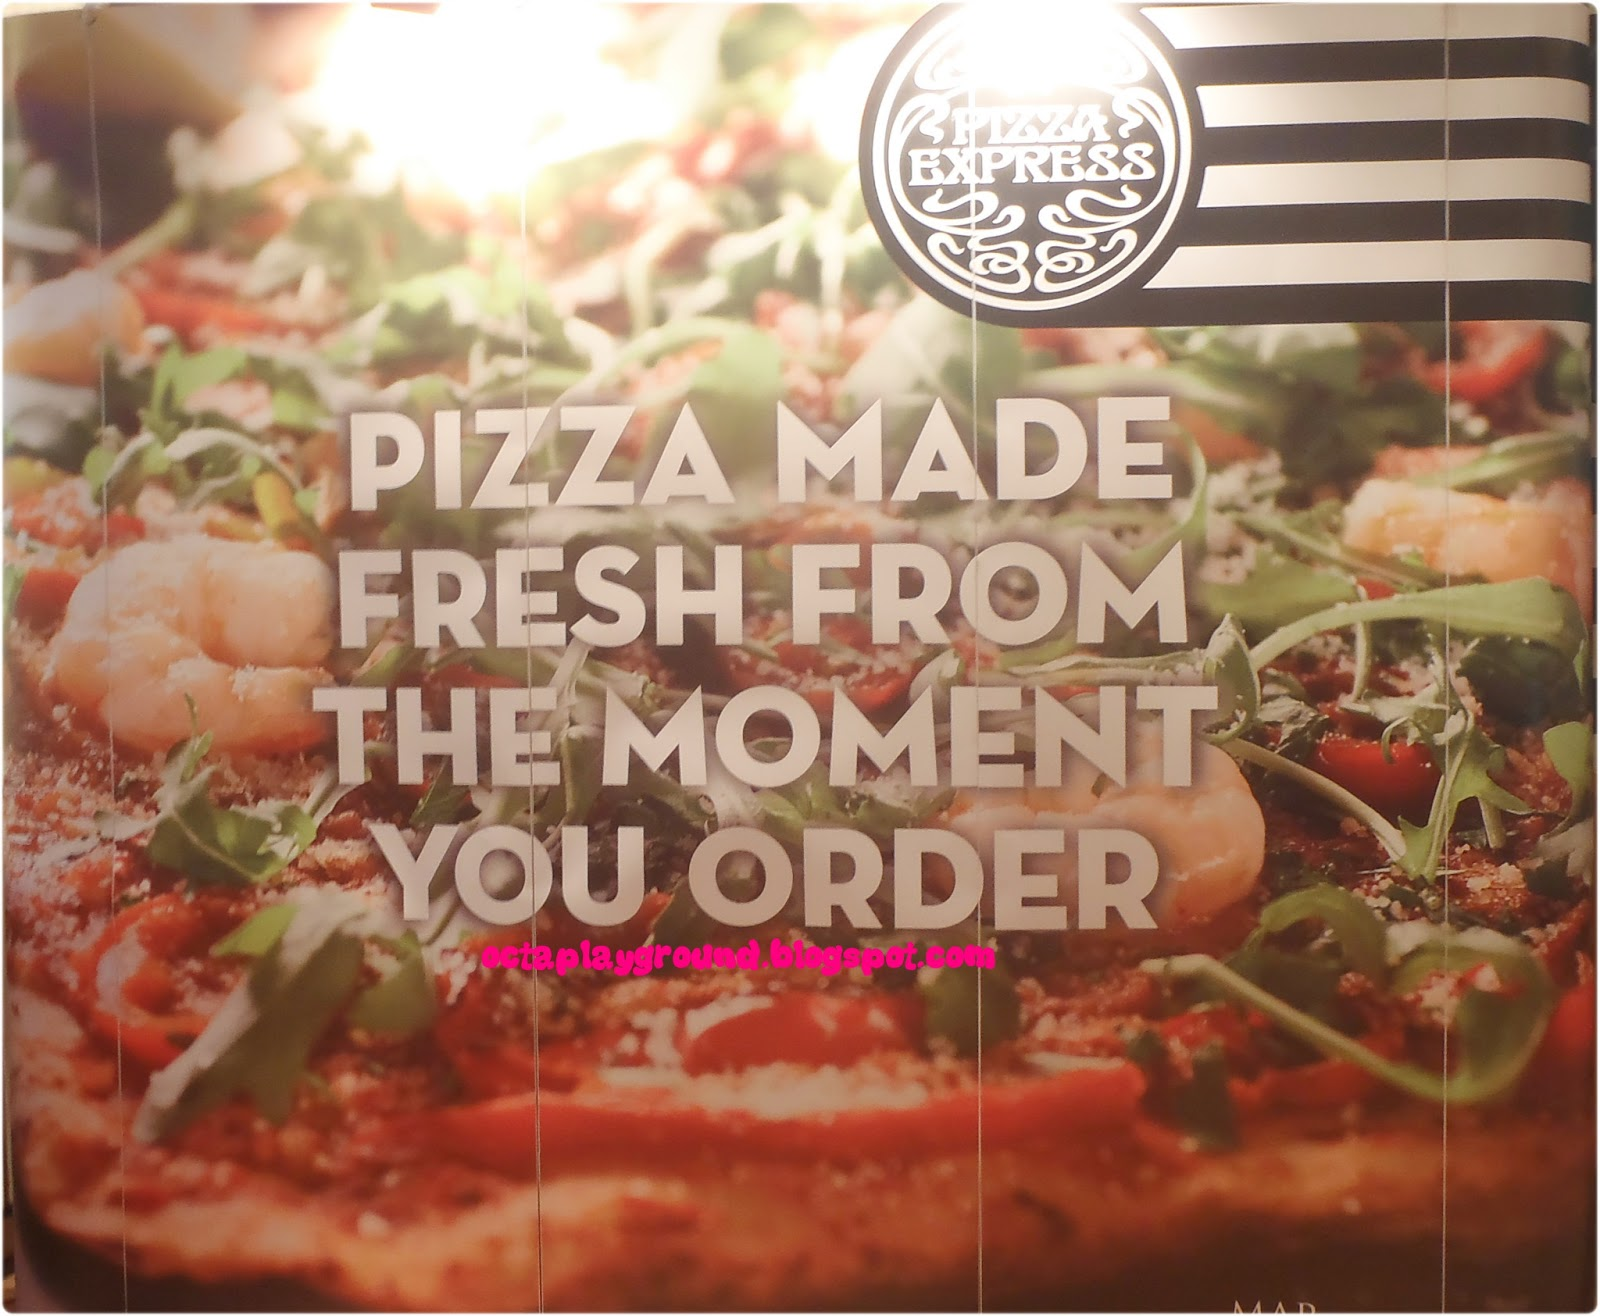 Leggera Pizza Pizza Express Pizza Express Aannddd